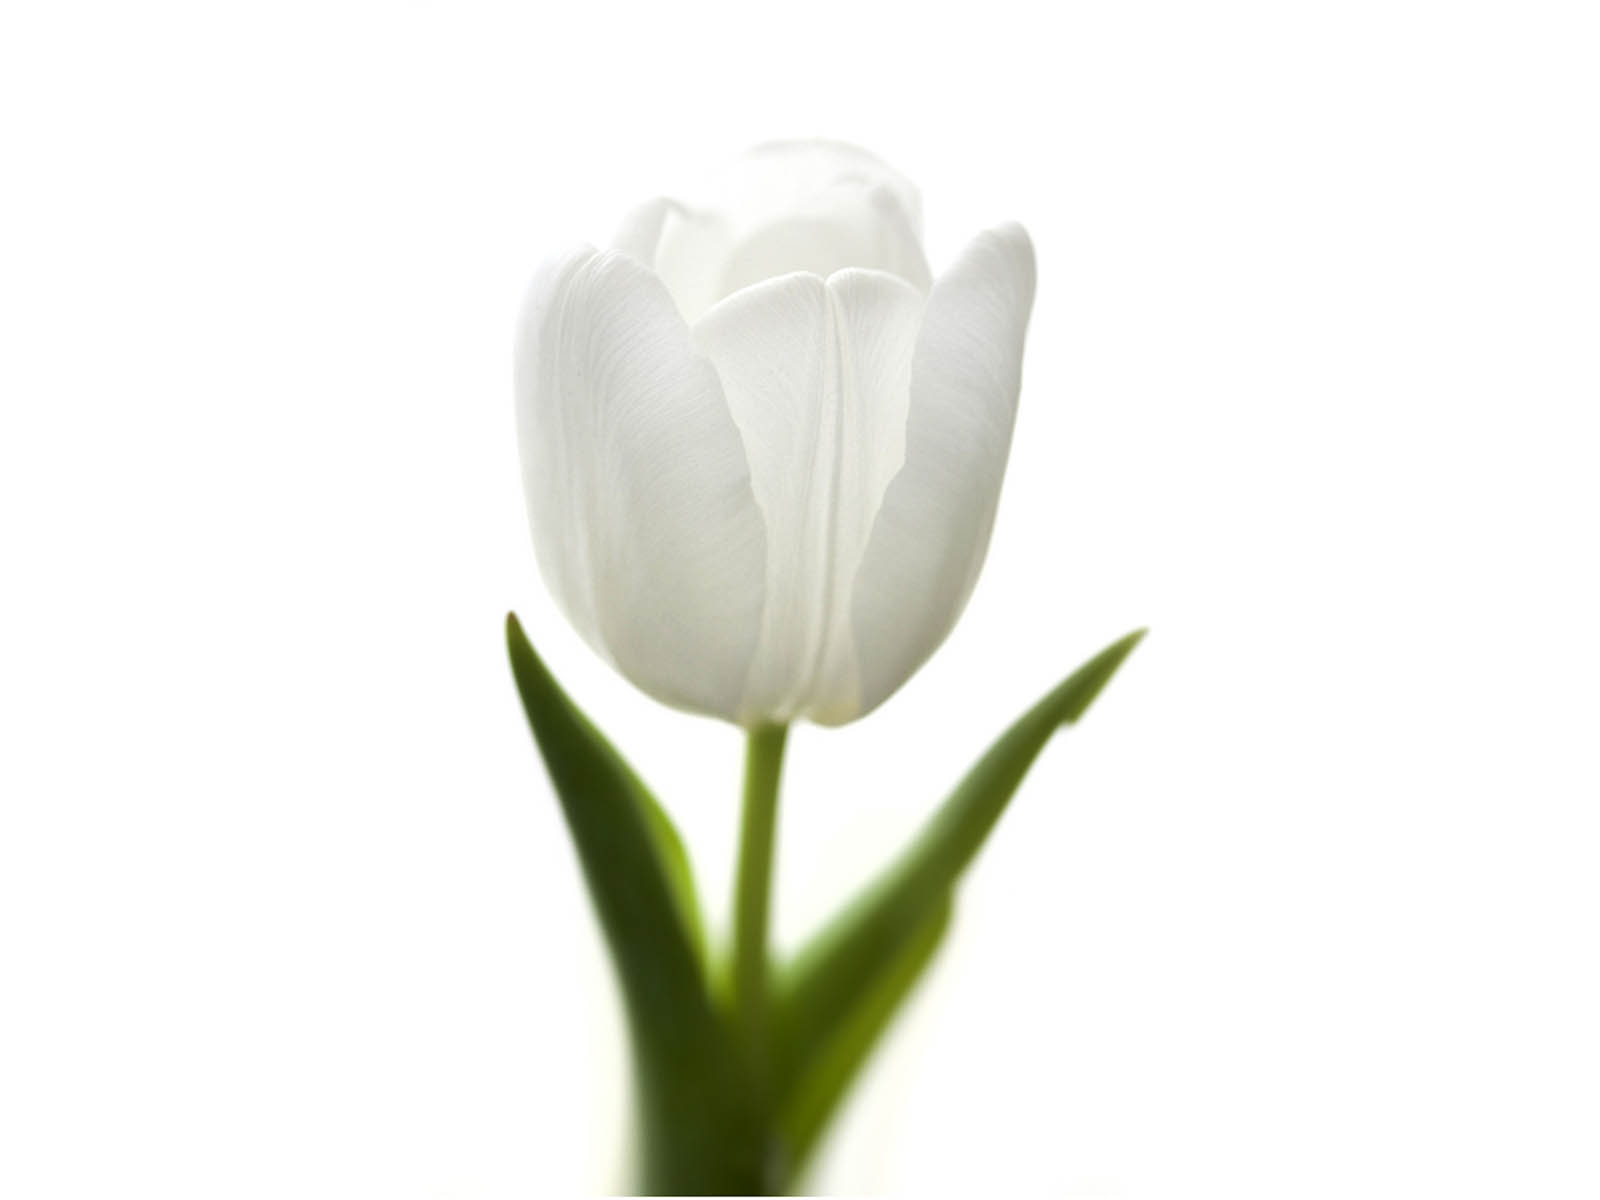 White Tulips 19 High Resolution Wallpaper Hdflowerwallpaper